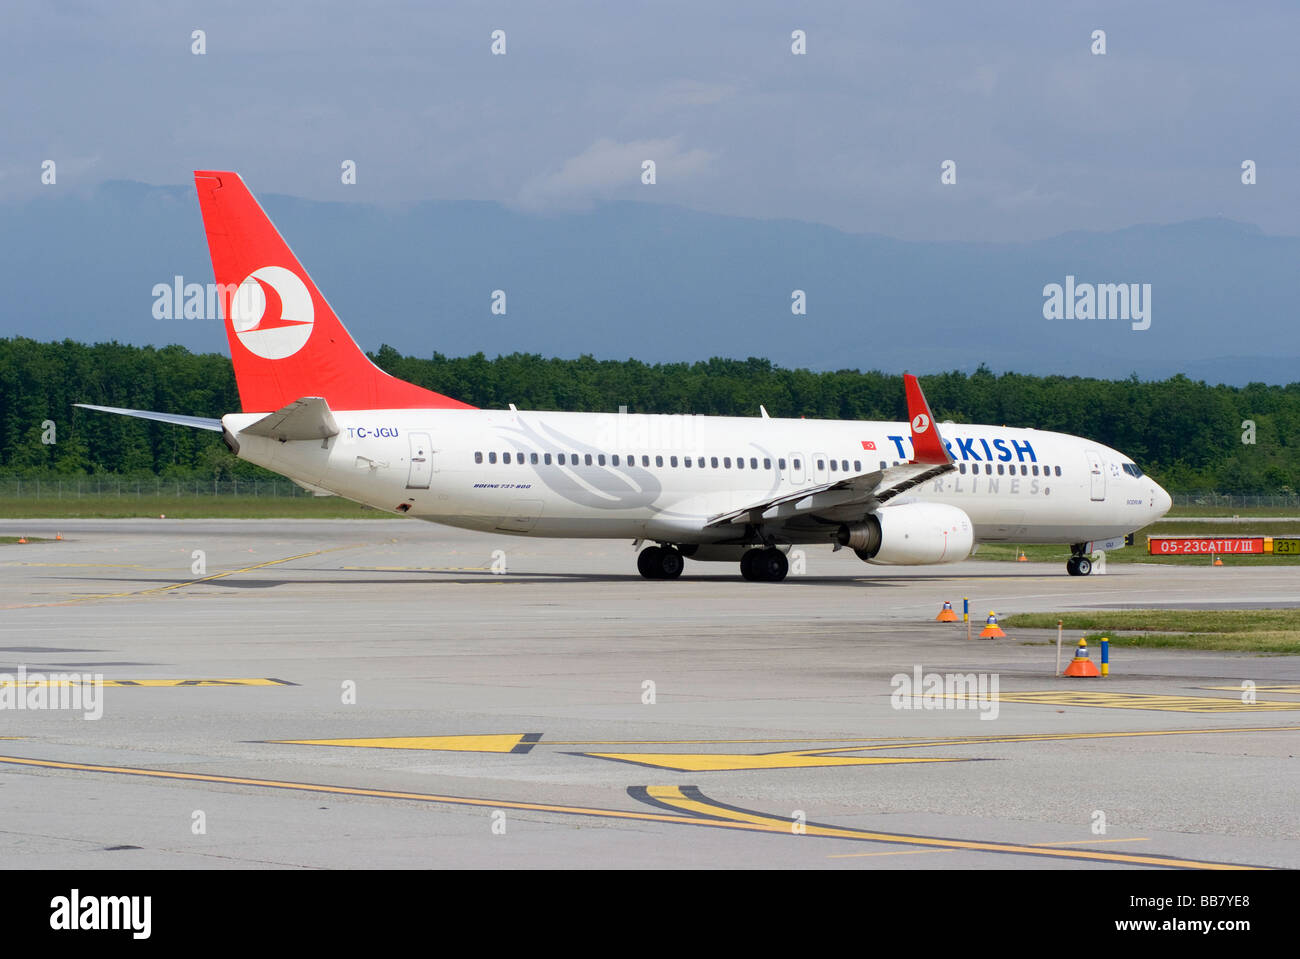 Turkish Airlines Boeing 737-8F2 with Winglets TC-JGU Airliner Taxiing at Geneva Airport Switzerland Geneve Suisse - Stock Image